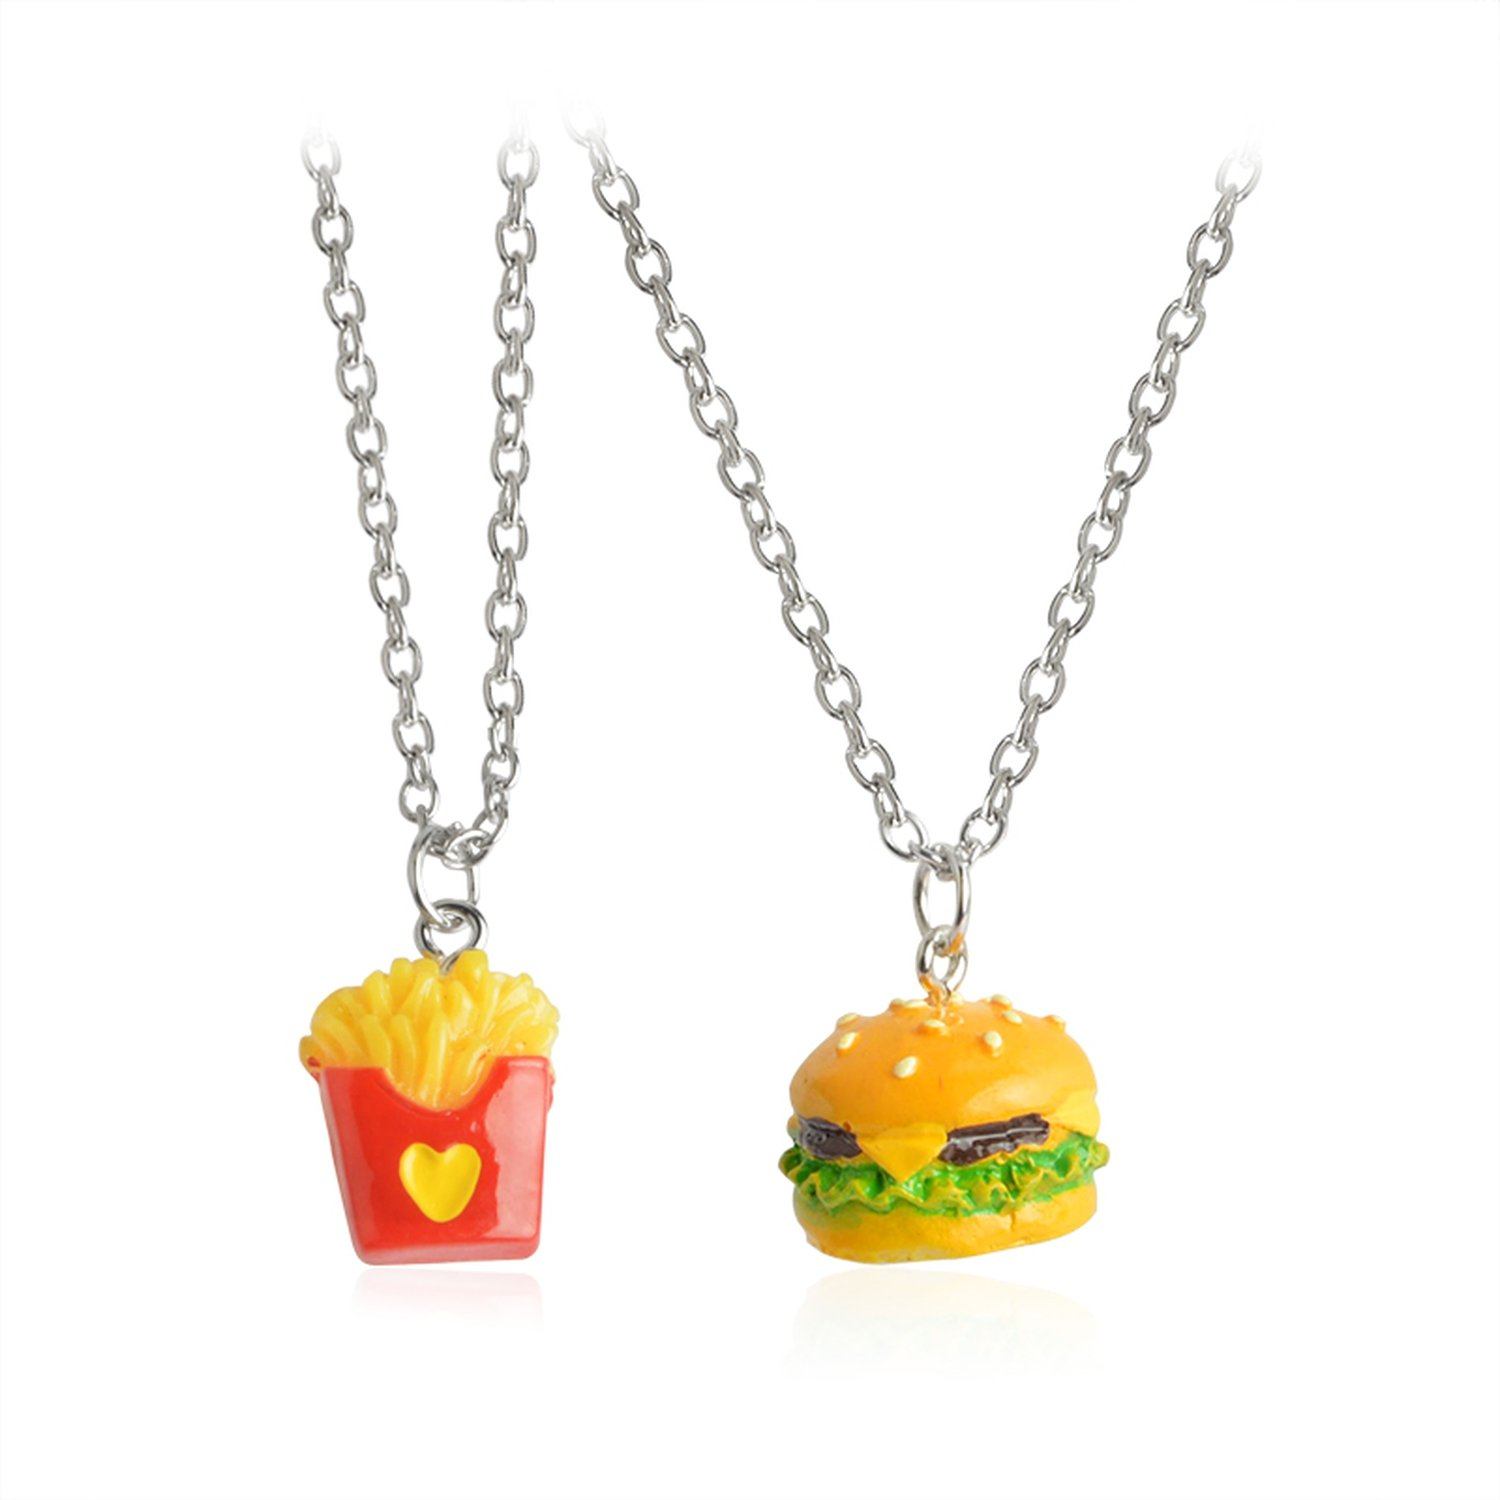 Acereima 2Pcs/Set Pendant Necklace Long Miniature Cheeseburger French Fries Burger Heart Love Chain